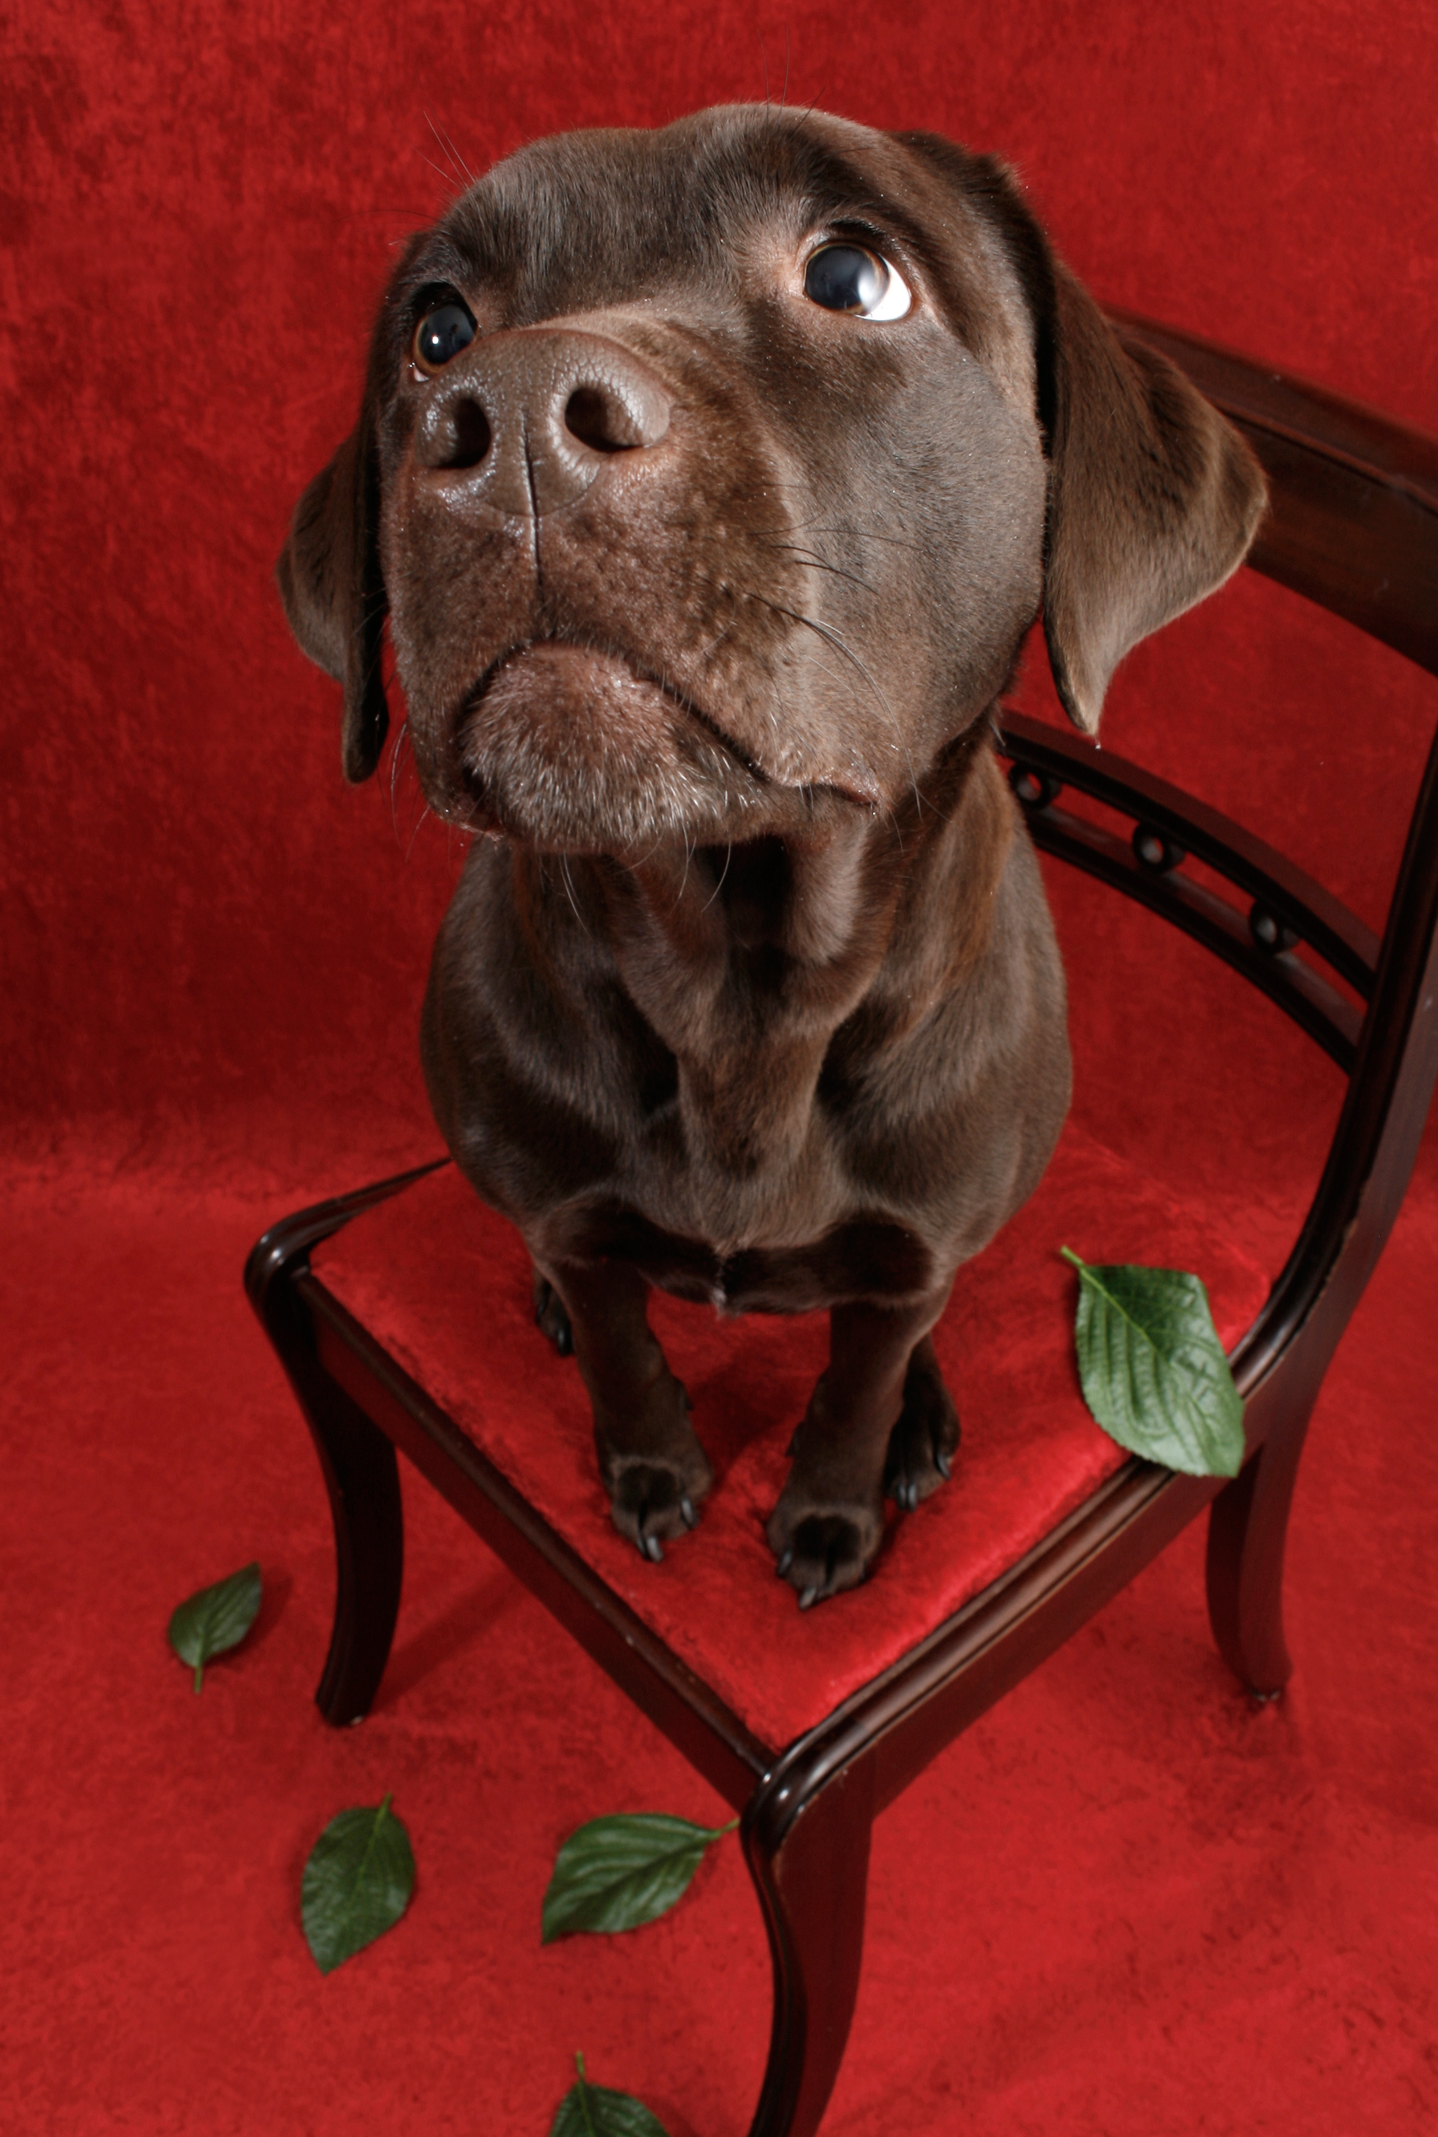 Labrador dog on chair, Brown, Chair, Christmas, Colors, HQ Photo